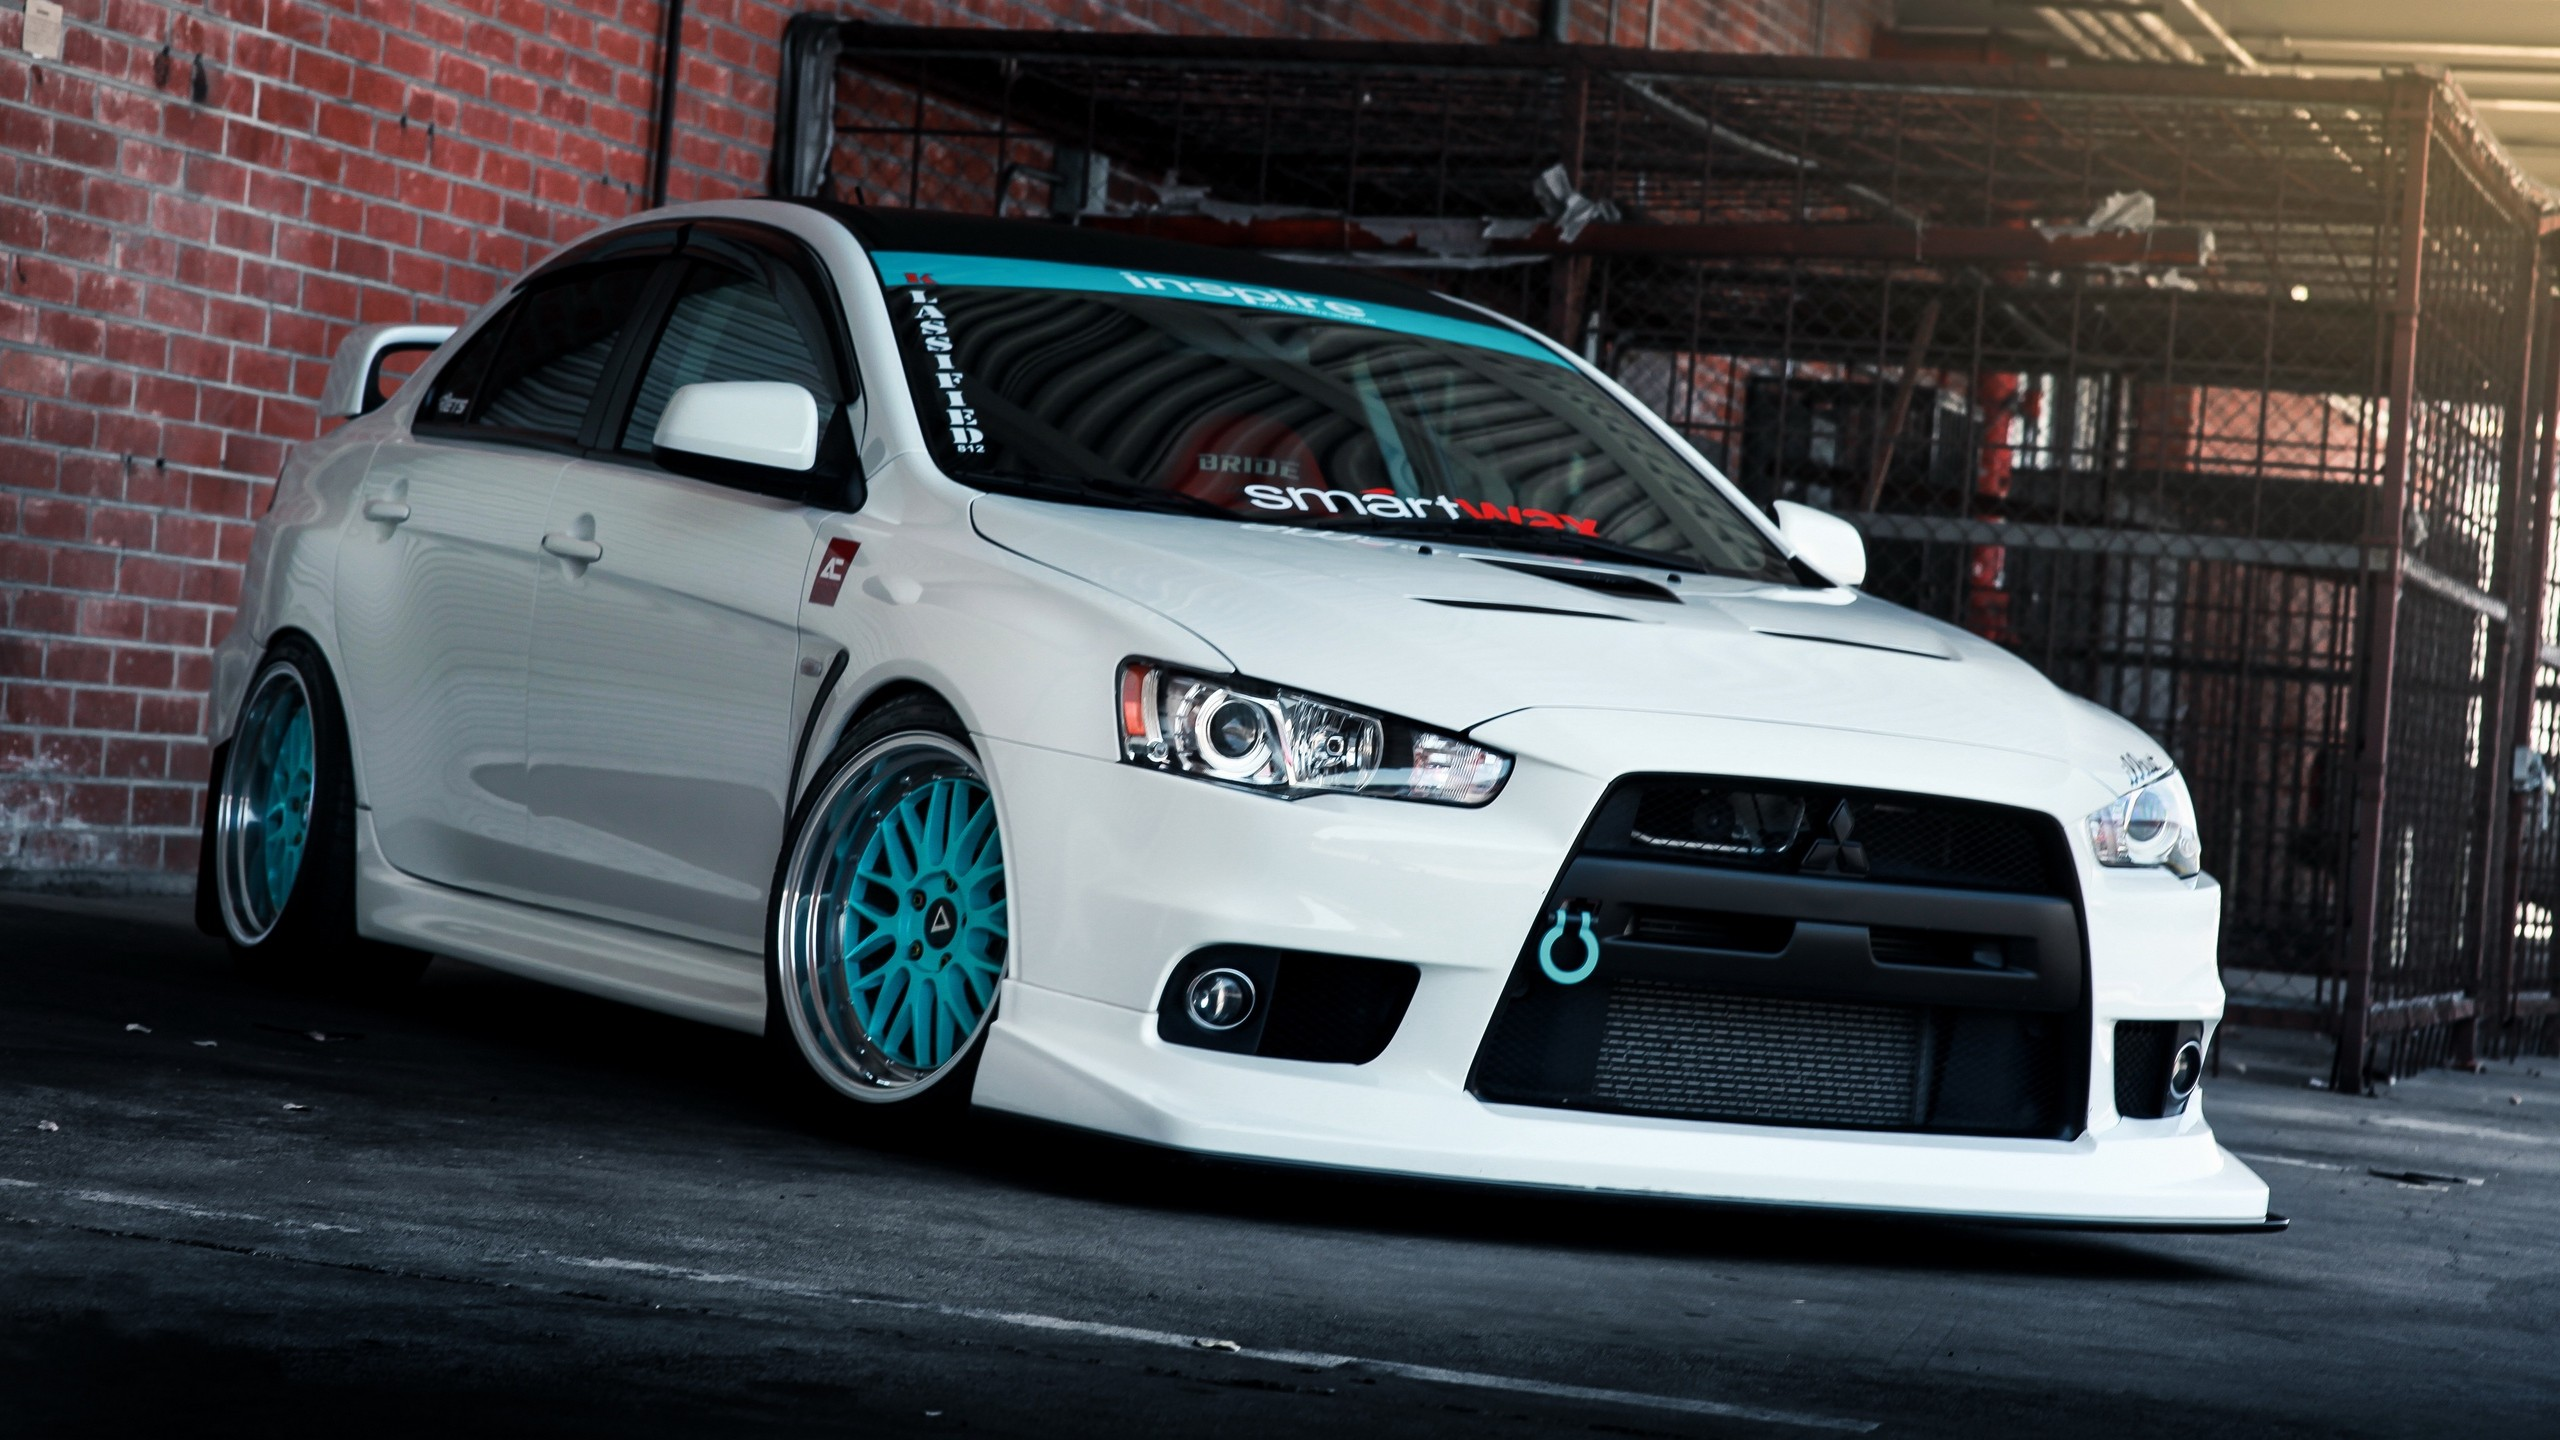 2560x1440  Wallpaper mitsubishi lancer, evo x, tune